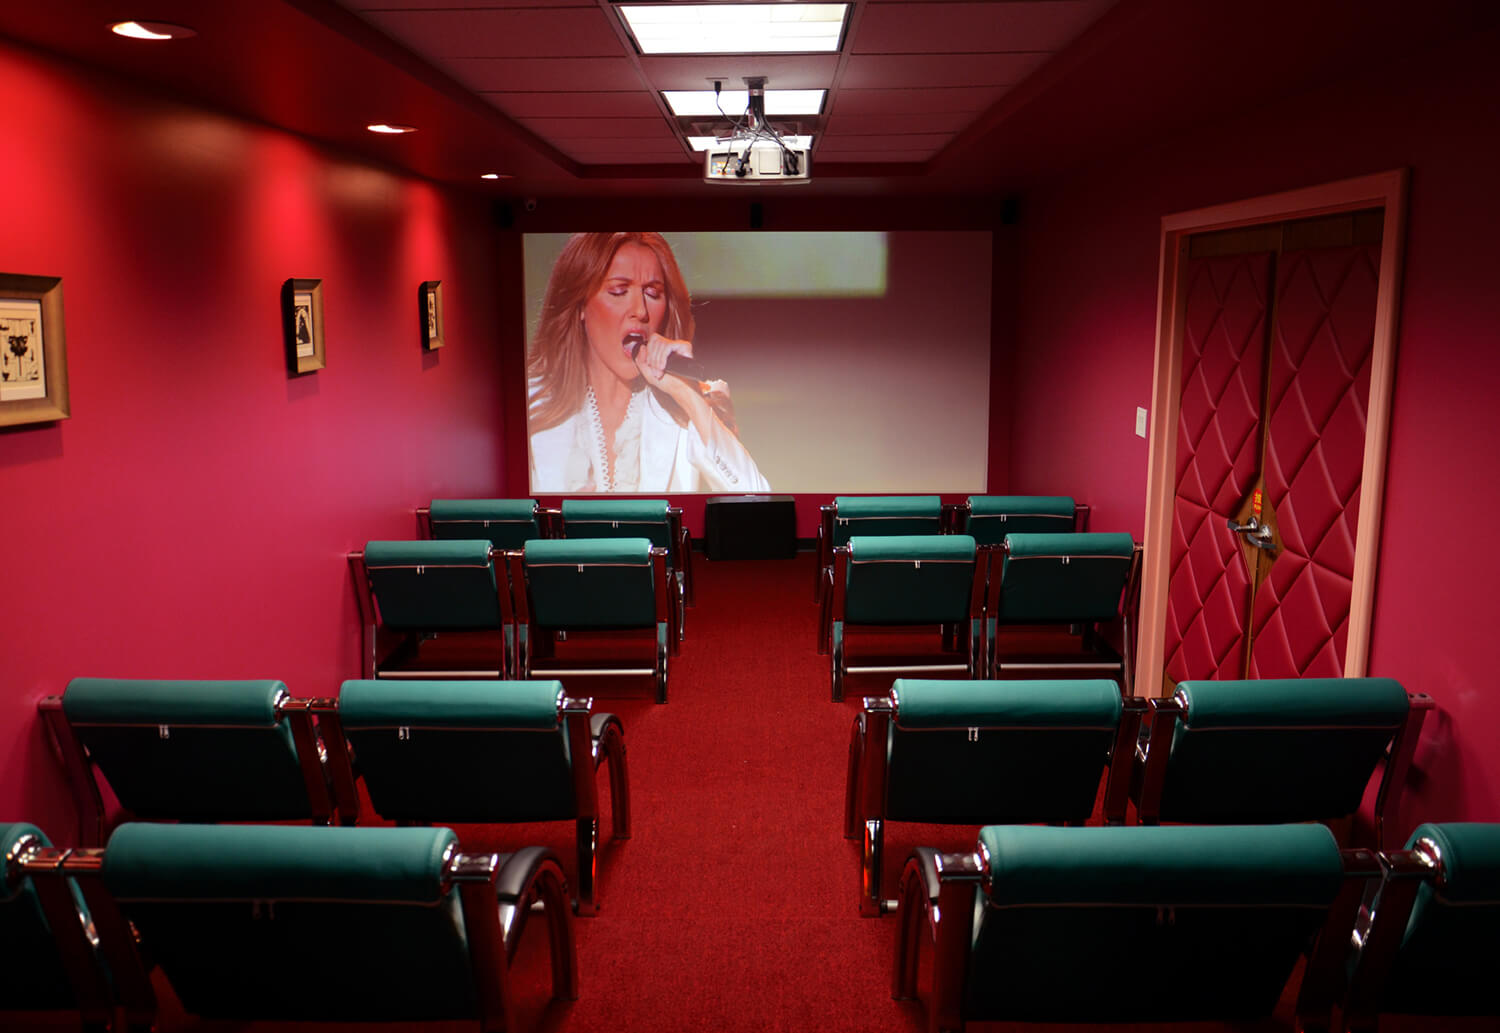 sunlight-fun-adult-senior-care-movie-theater